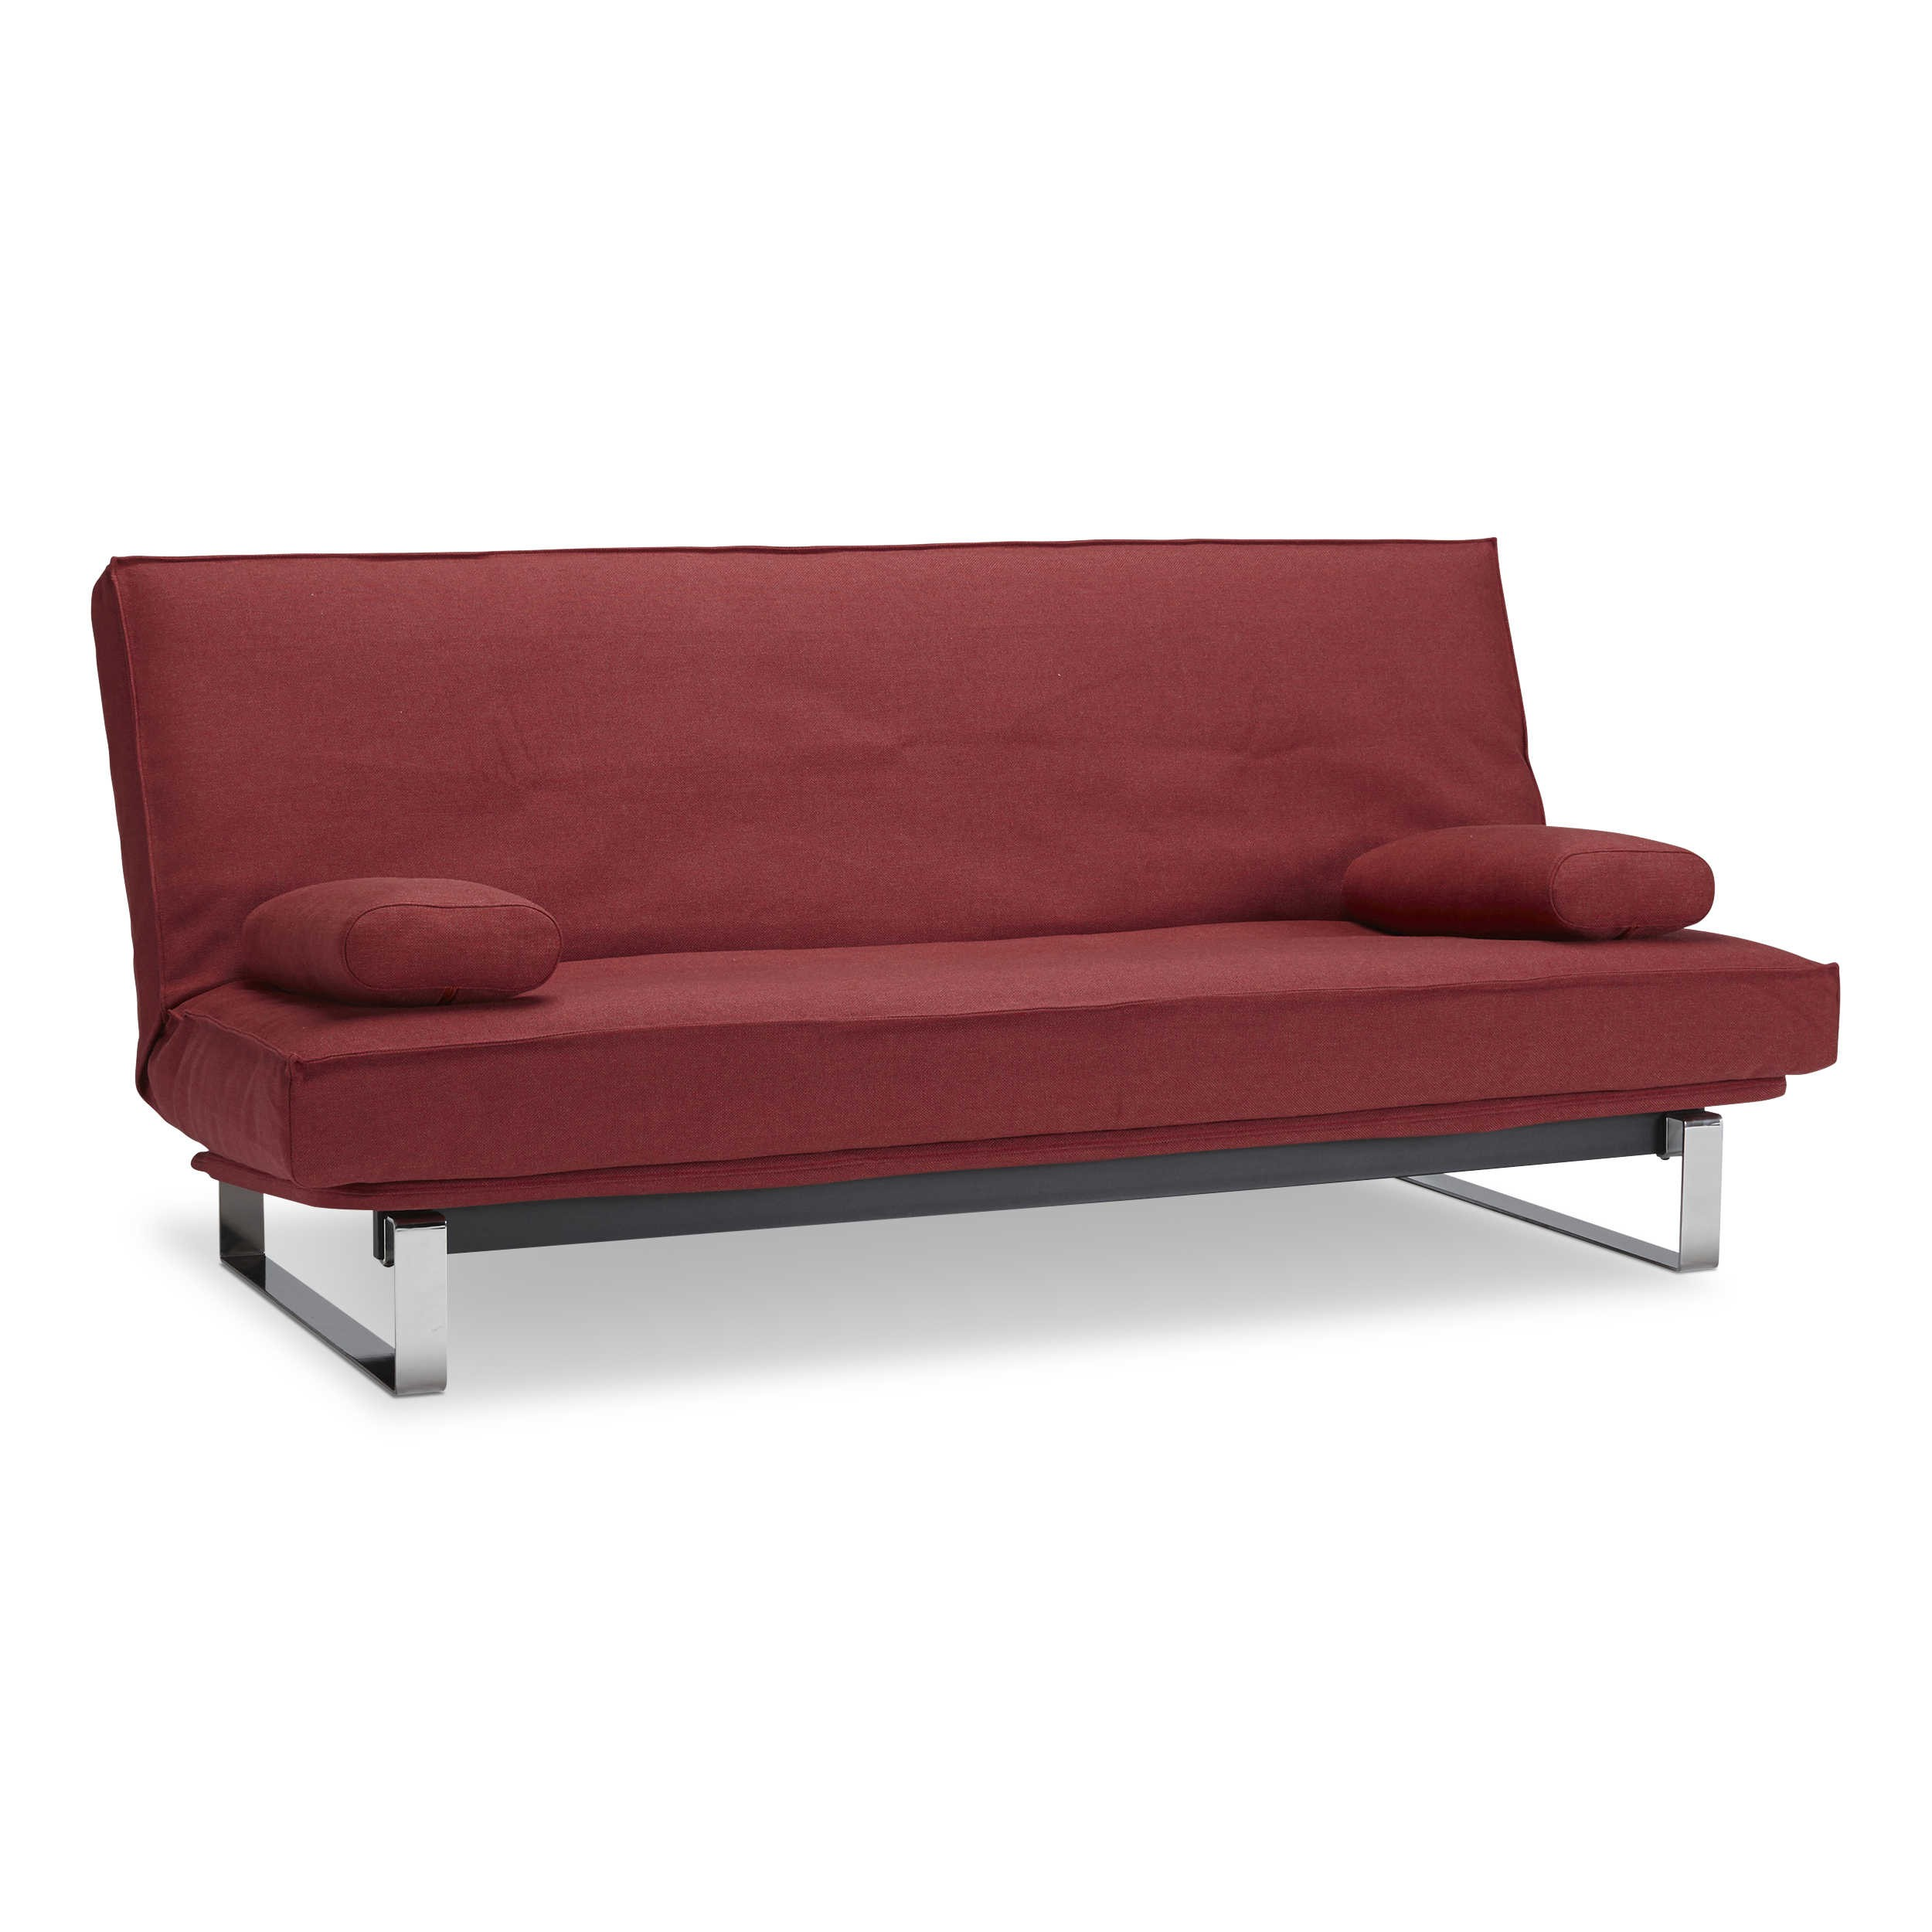 Innovation Schlafsofa Innovation Schlafsofa Minimum Rot Stoff Online Kaufen Bei